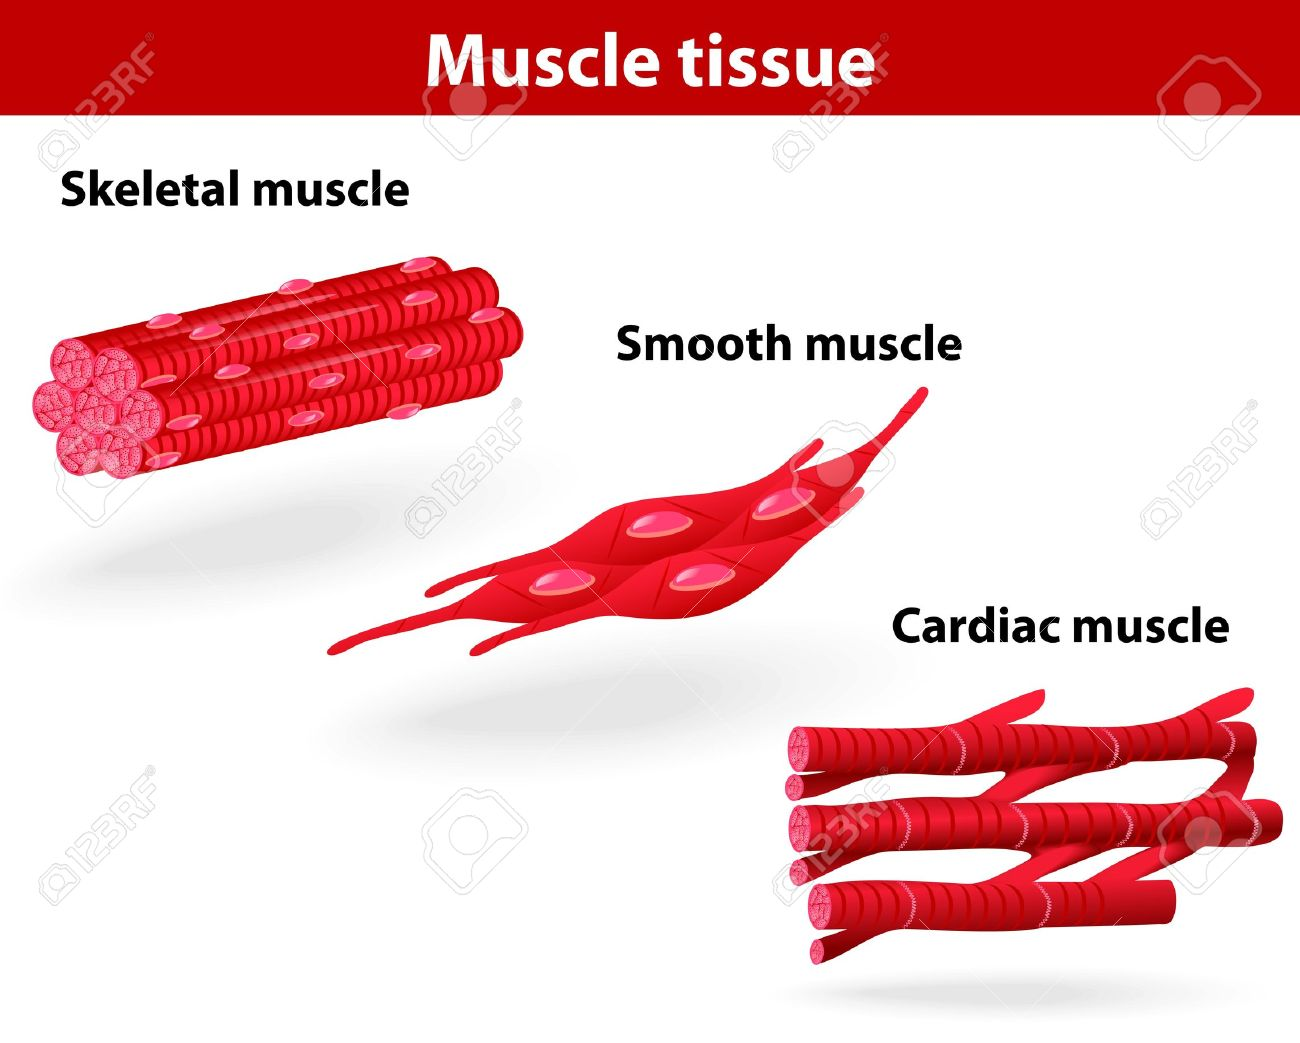 Types Of Muscle Tissue Skeletal Muscle Smooth Muscle Cardiac